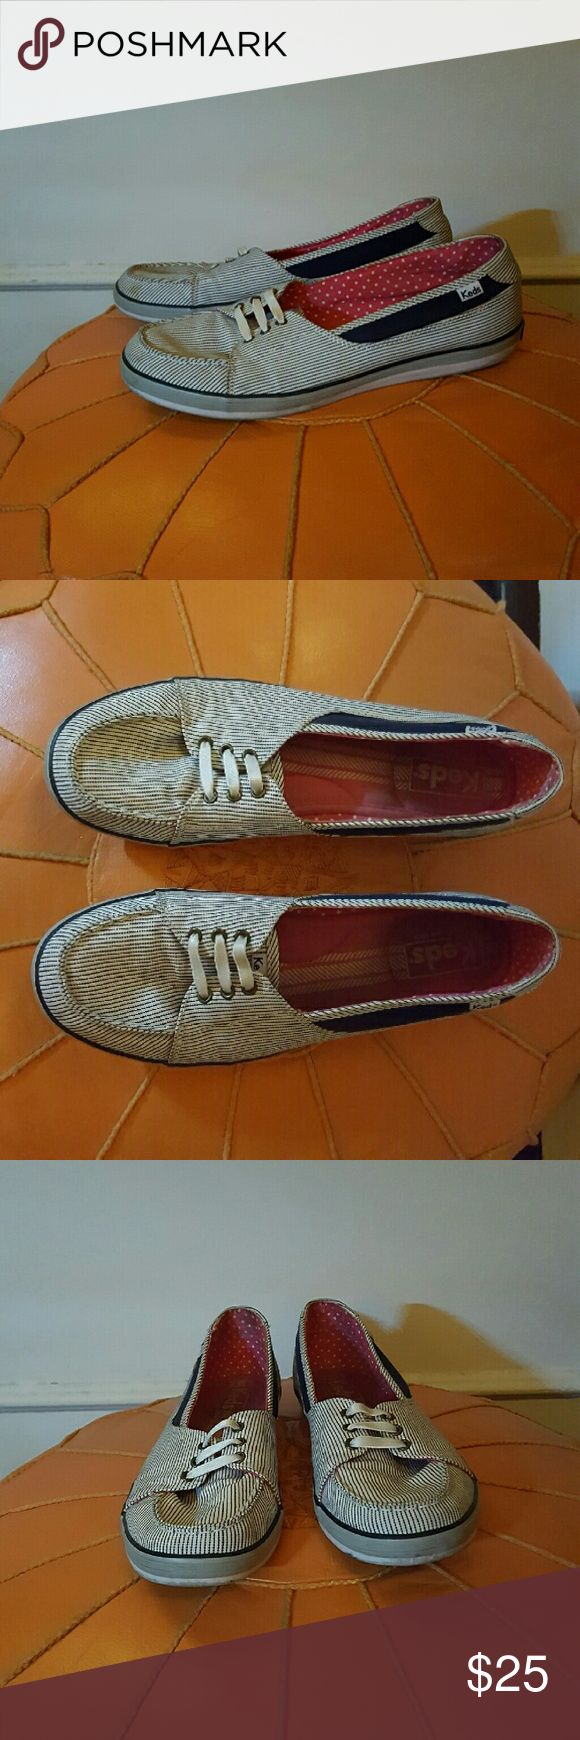 Keds boat shoes Cute Keds boat shoes. Red white and blue. Gently used in good condition. Keds Shoes Flats & Loafers